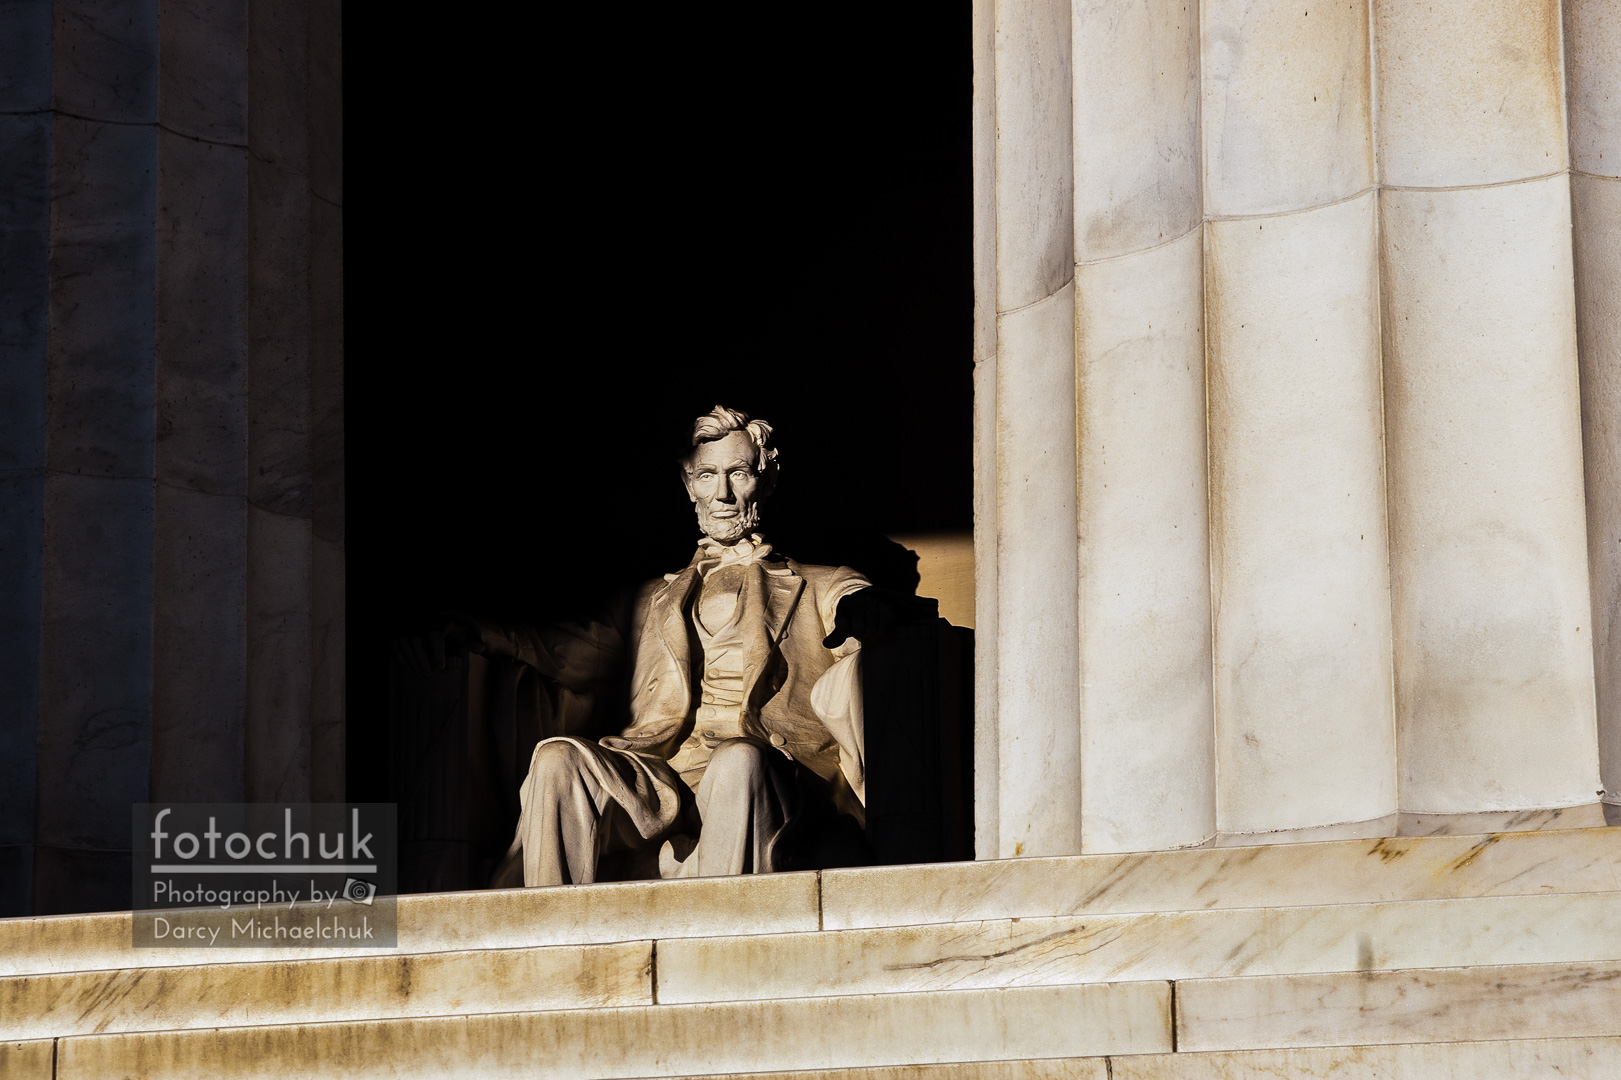 Lincoln Welcomes the Morning  by Darcy Michaelchuk